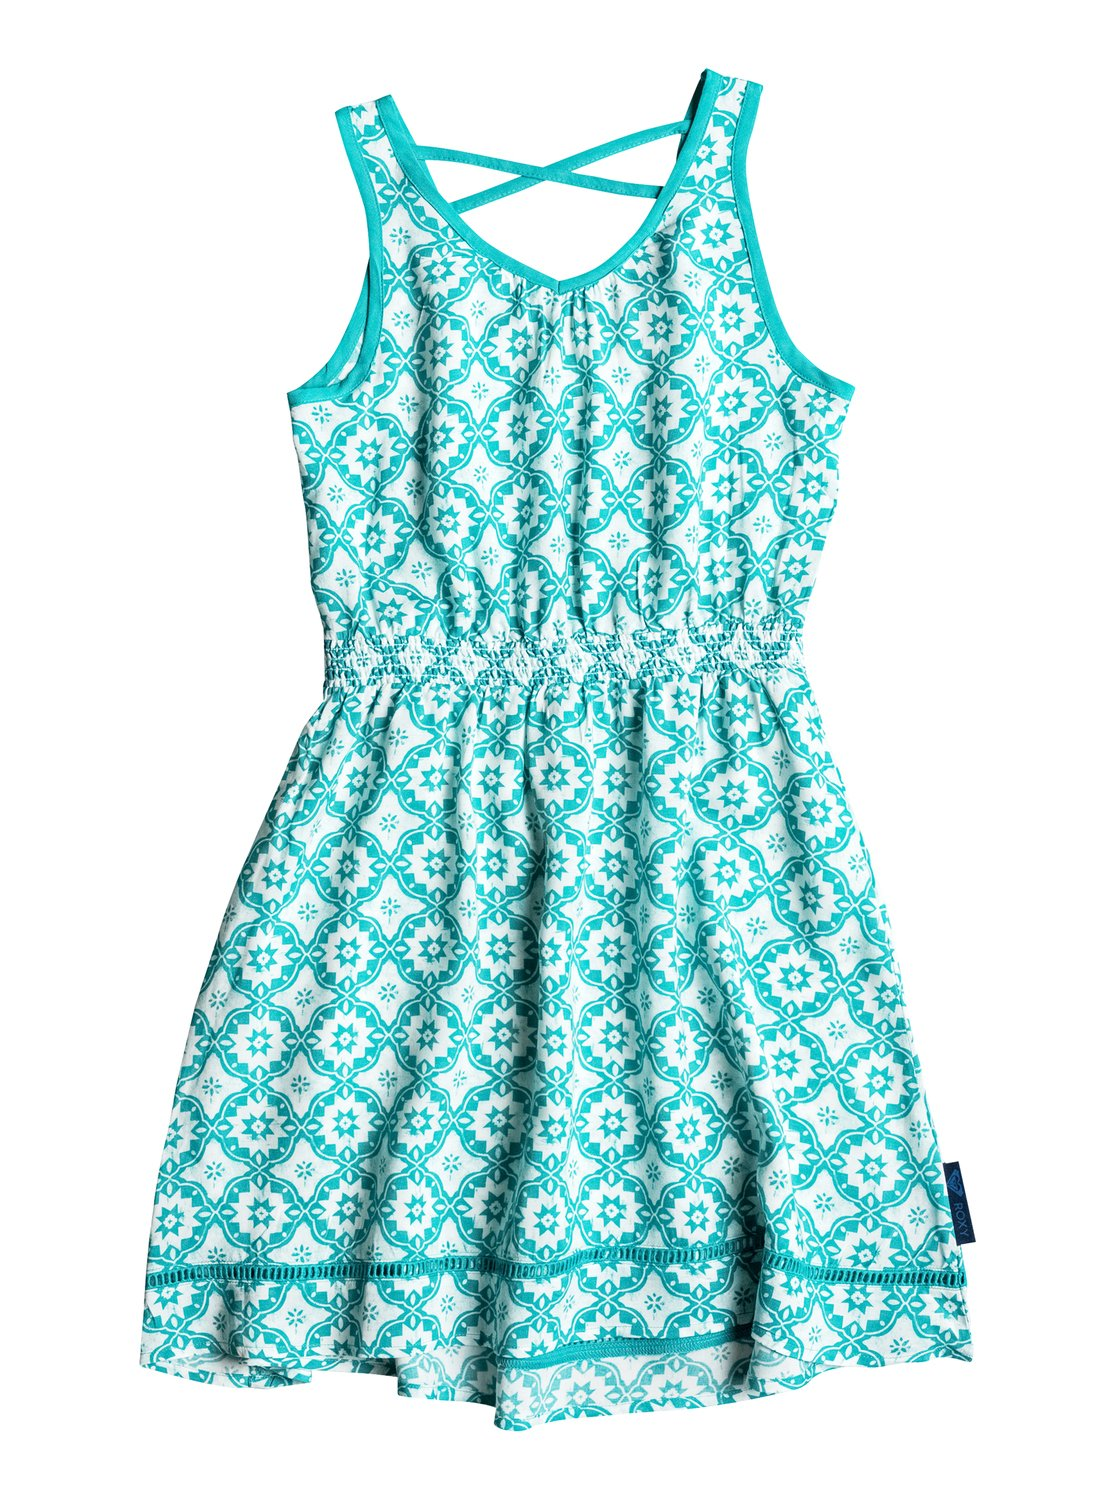 Girls 7-14 Dresses